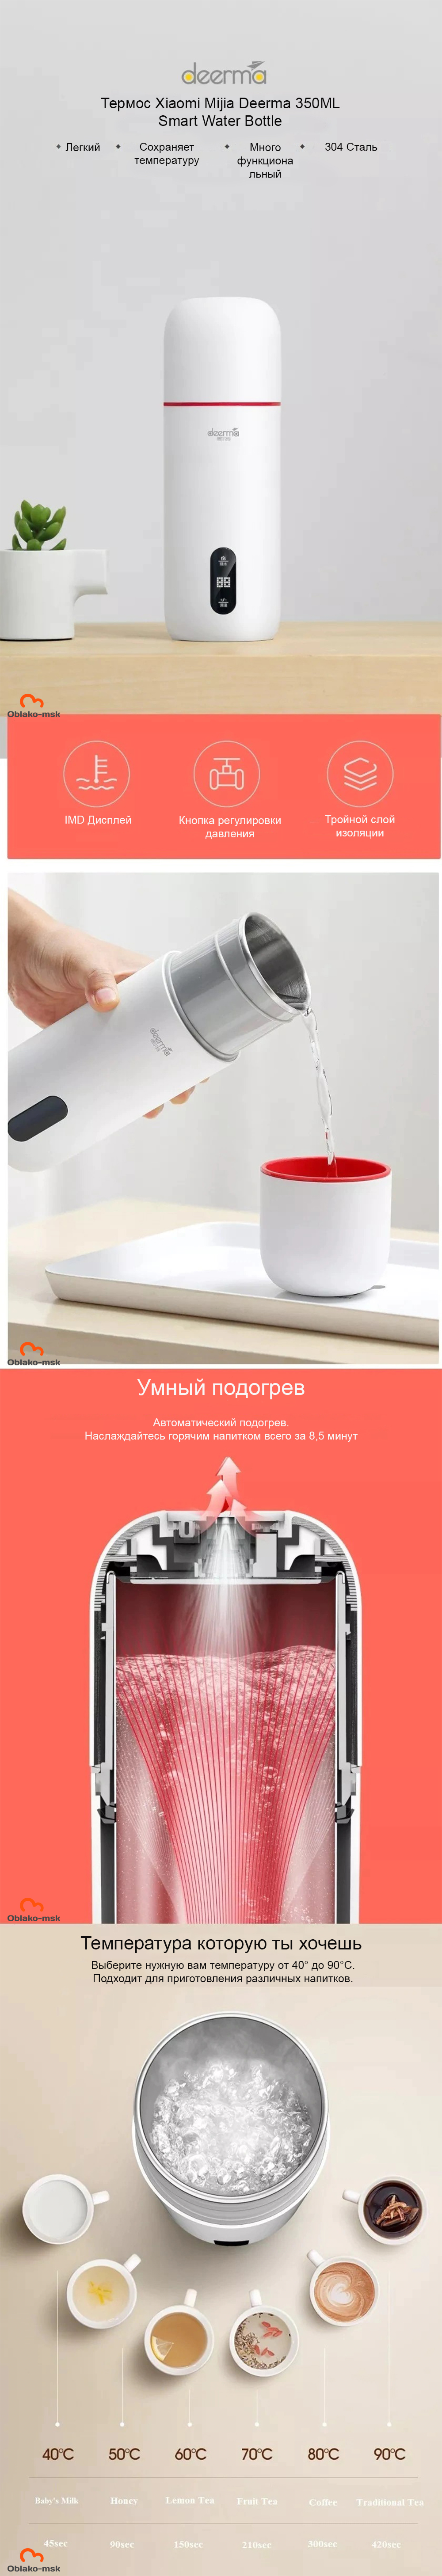 Термос Xiaomi Mijia Deerma 350ML Smart Water Bottle